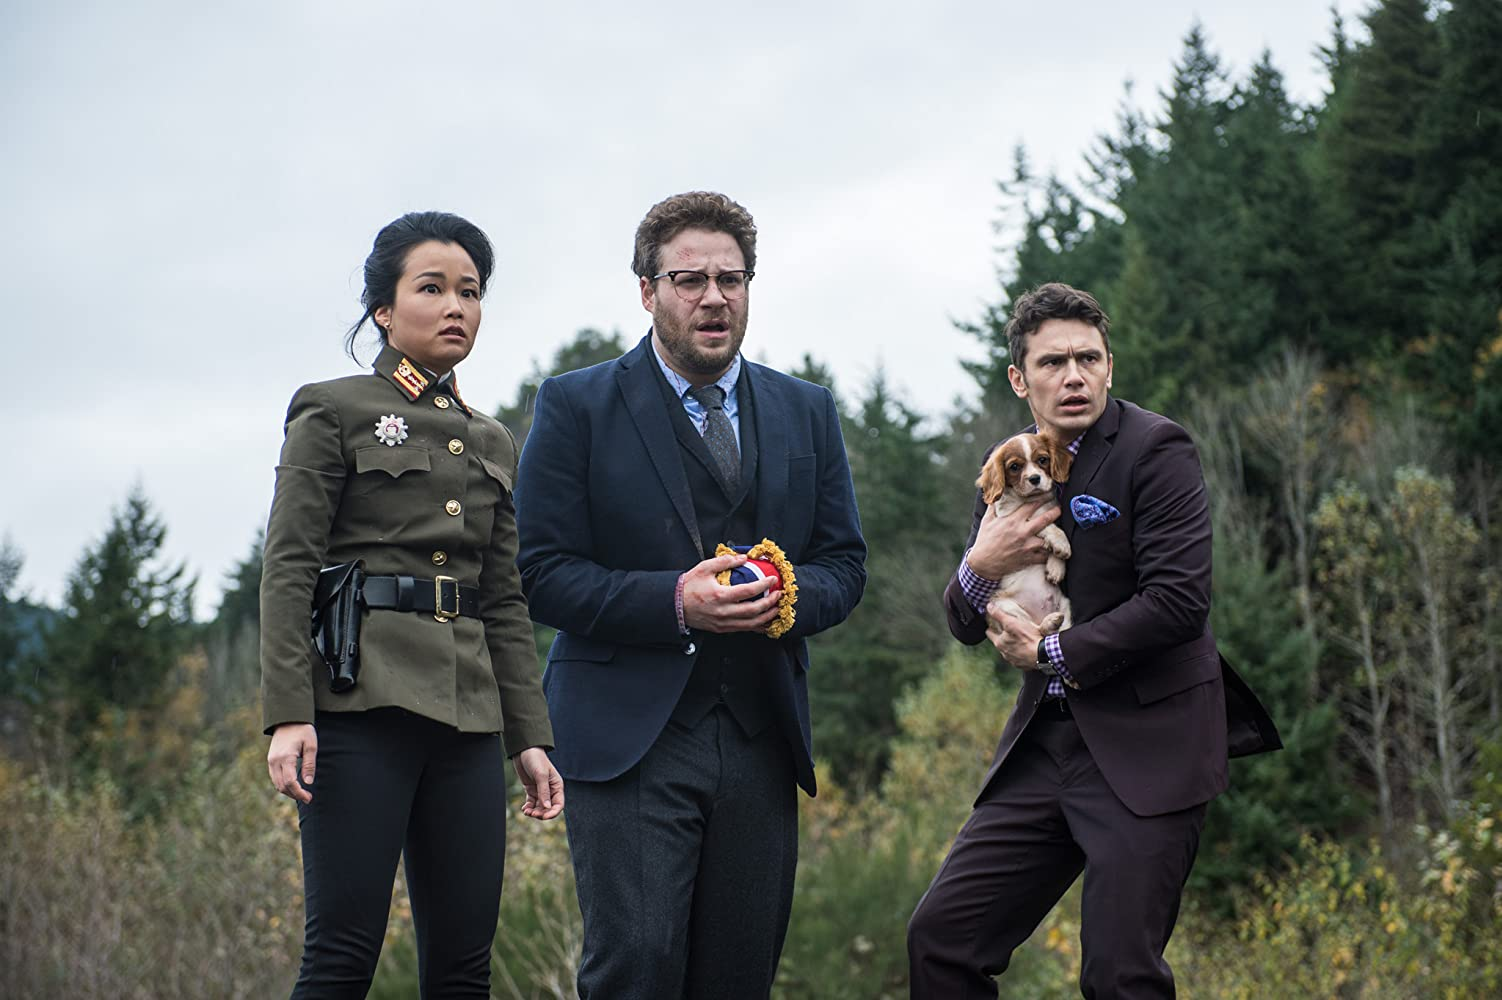 James Franco, Seth Rogen, and Diana Bang in The Interview (2014)